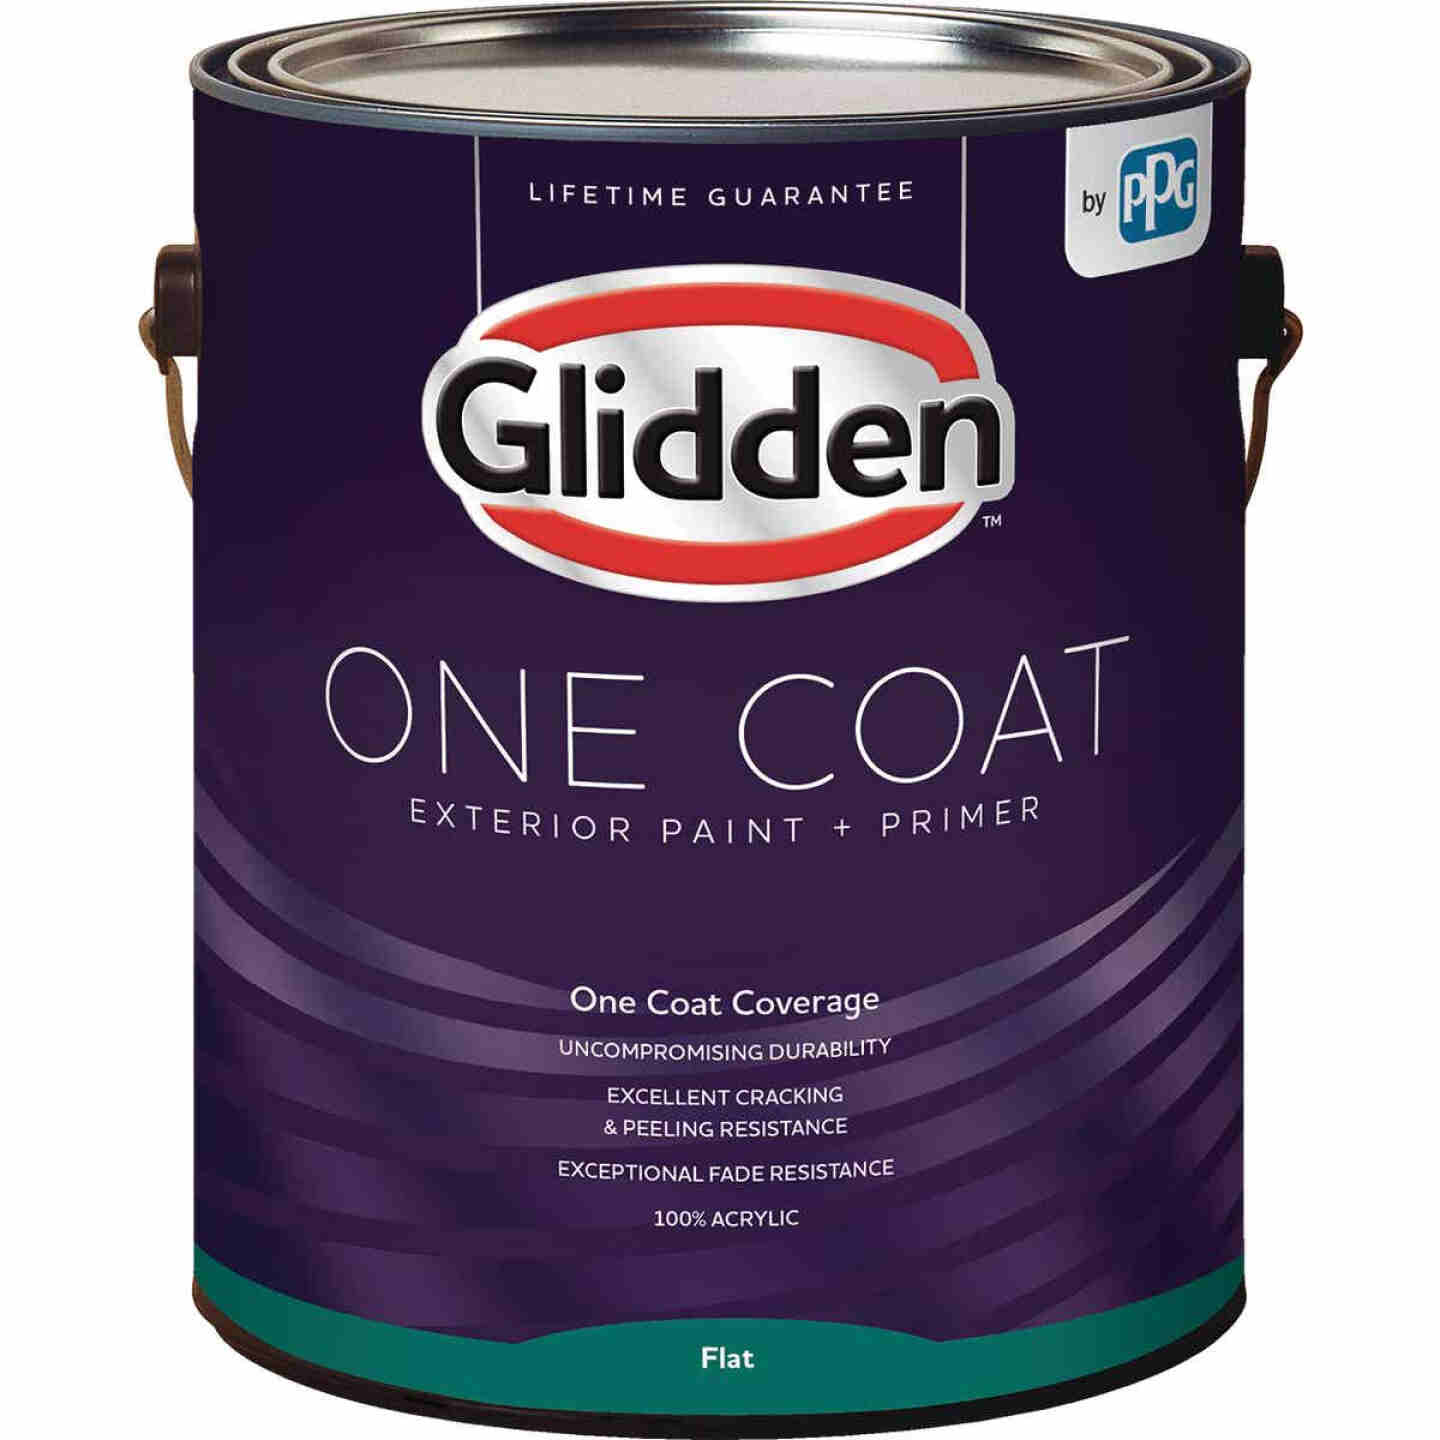 Glidden One Coat Exterior Paint + Primer Flat White & Pastel Base 1 Gallon Image 1